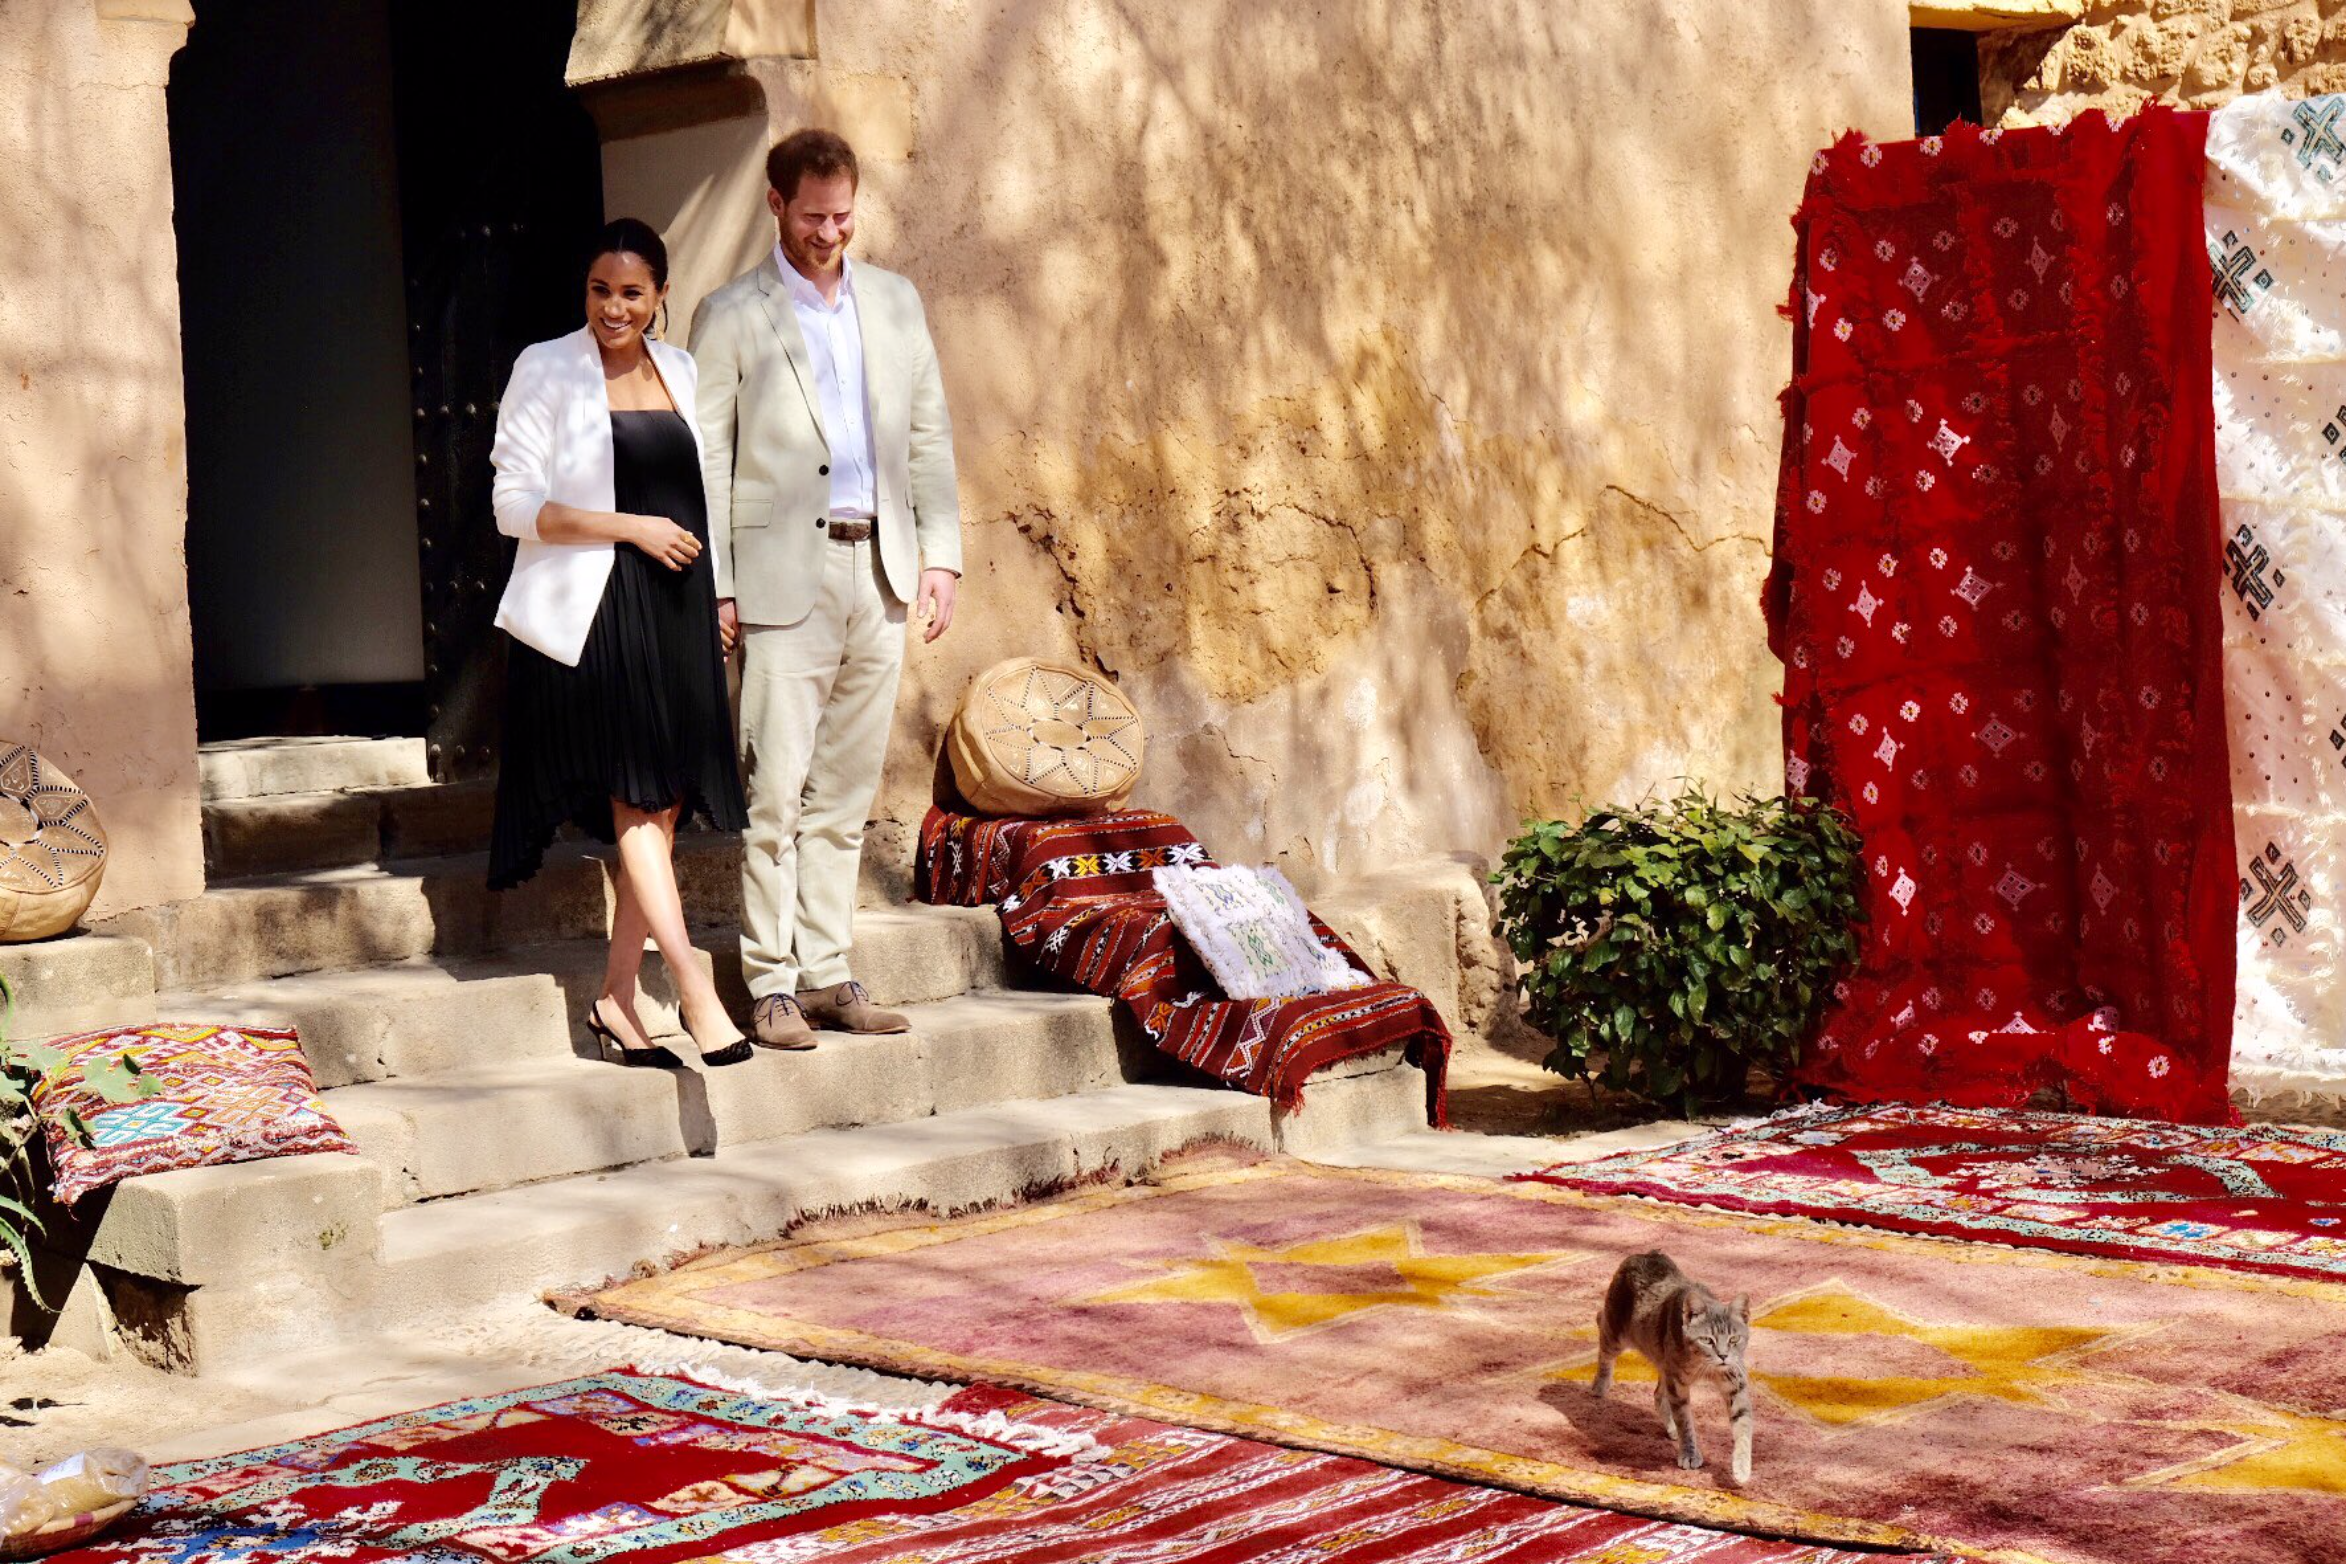 Duke and Duchess Morocco visit